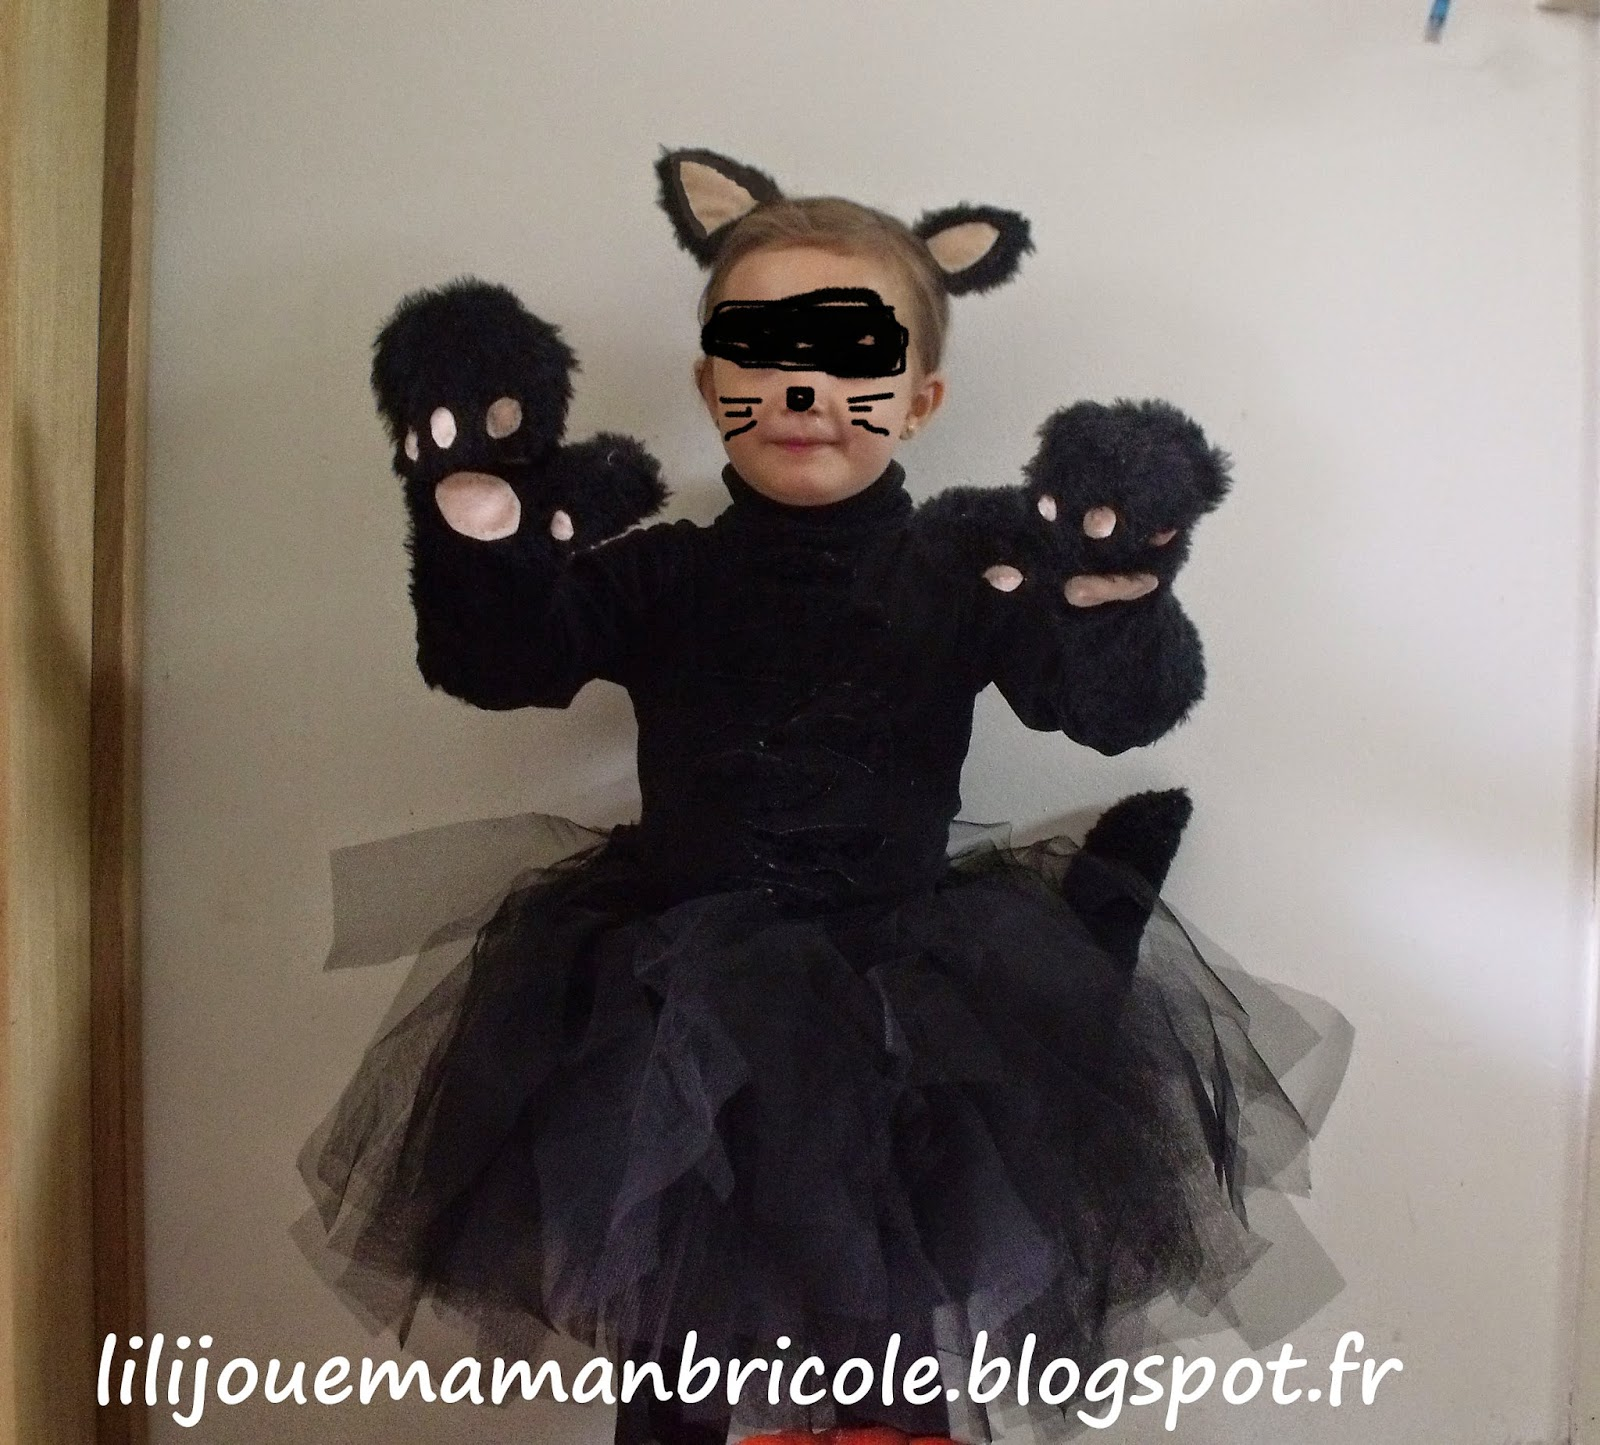 lili joue maman bricole tuto costume chat noir fille pour halloween. Black Bedroom Furniture Sets. Home Design Ideas